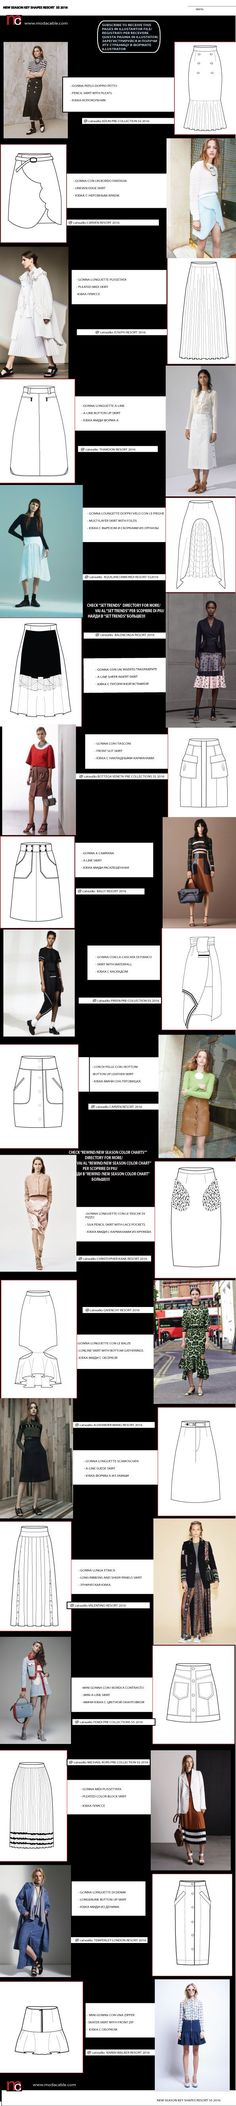 Key Skirt Shapes seen at the SS 2016 Resort Collections - PopUp http://ModaCable.com #2016trends...x